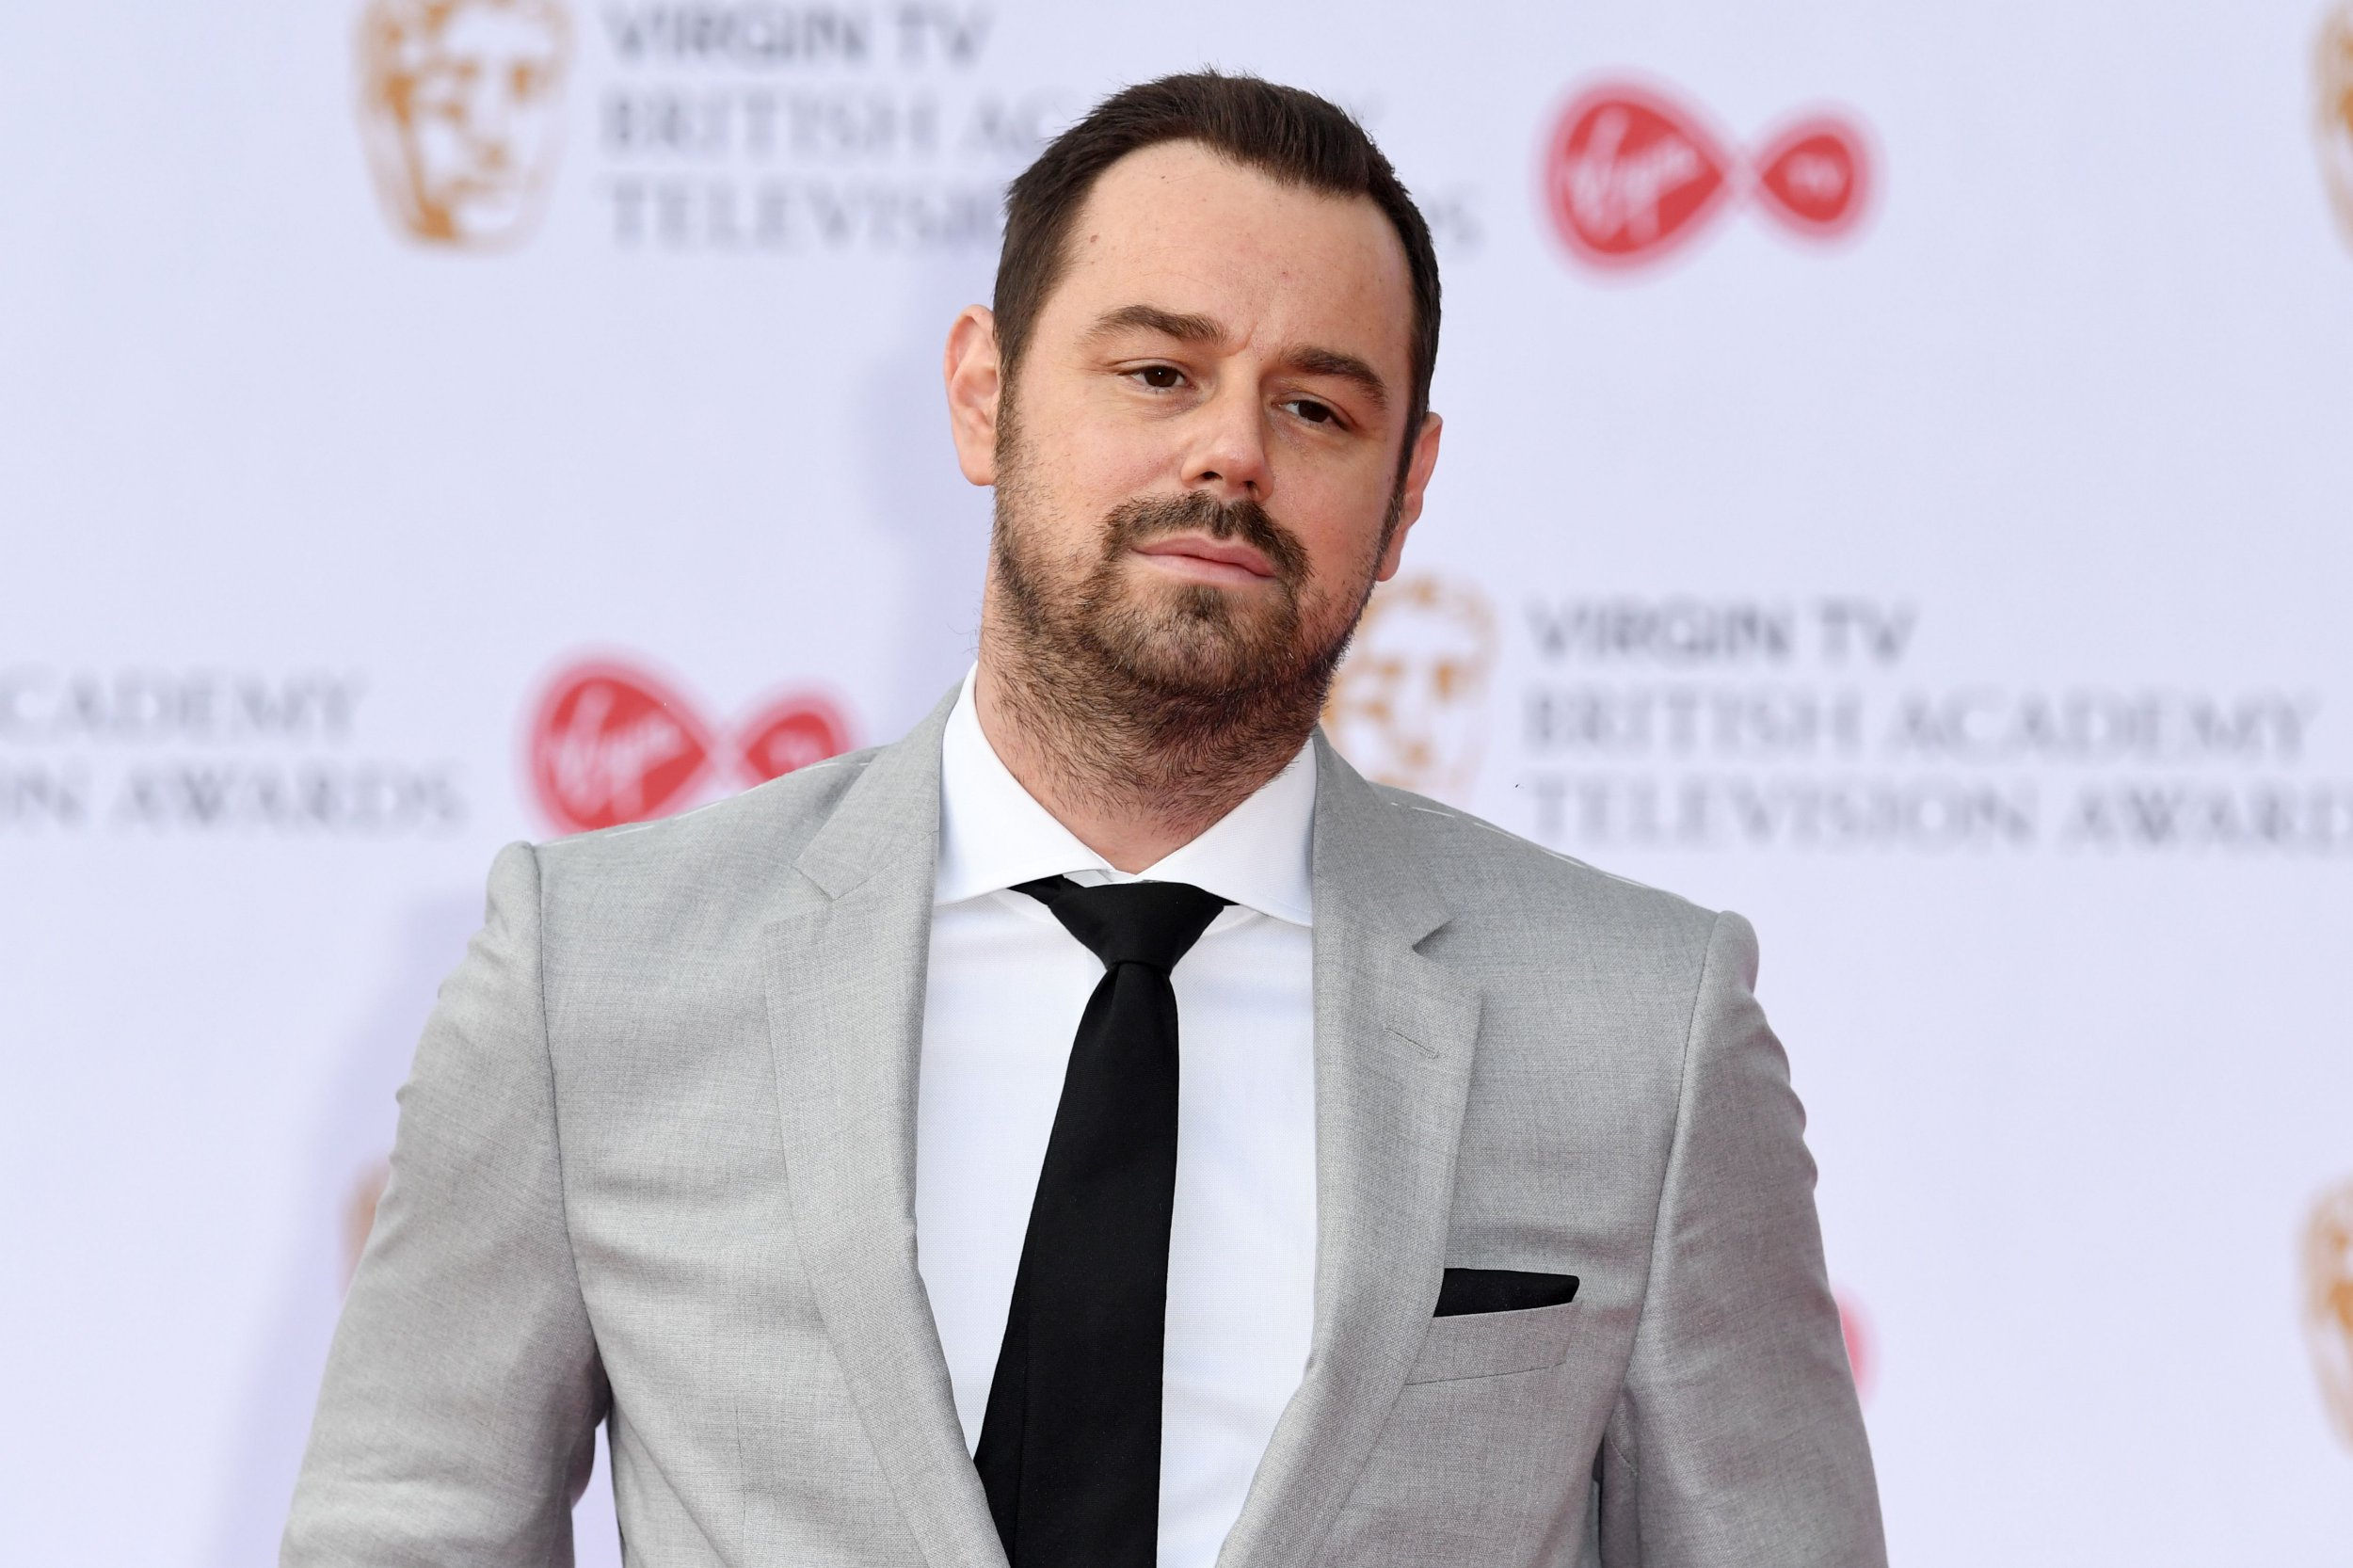 Mandatory Credit: Photo by James Gourley/REX/Shutterstock (8819354eb) Danny Dyer Virgin TV British Academy Television Awards 2017, Arrivals, Royal Festival Hall, London, UK - 14 May 2017